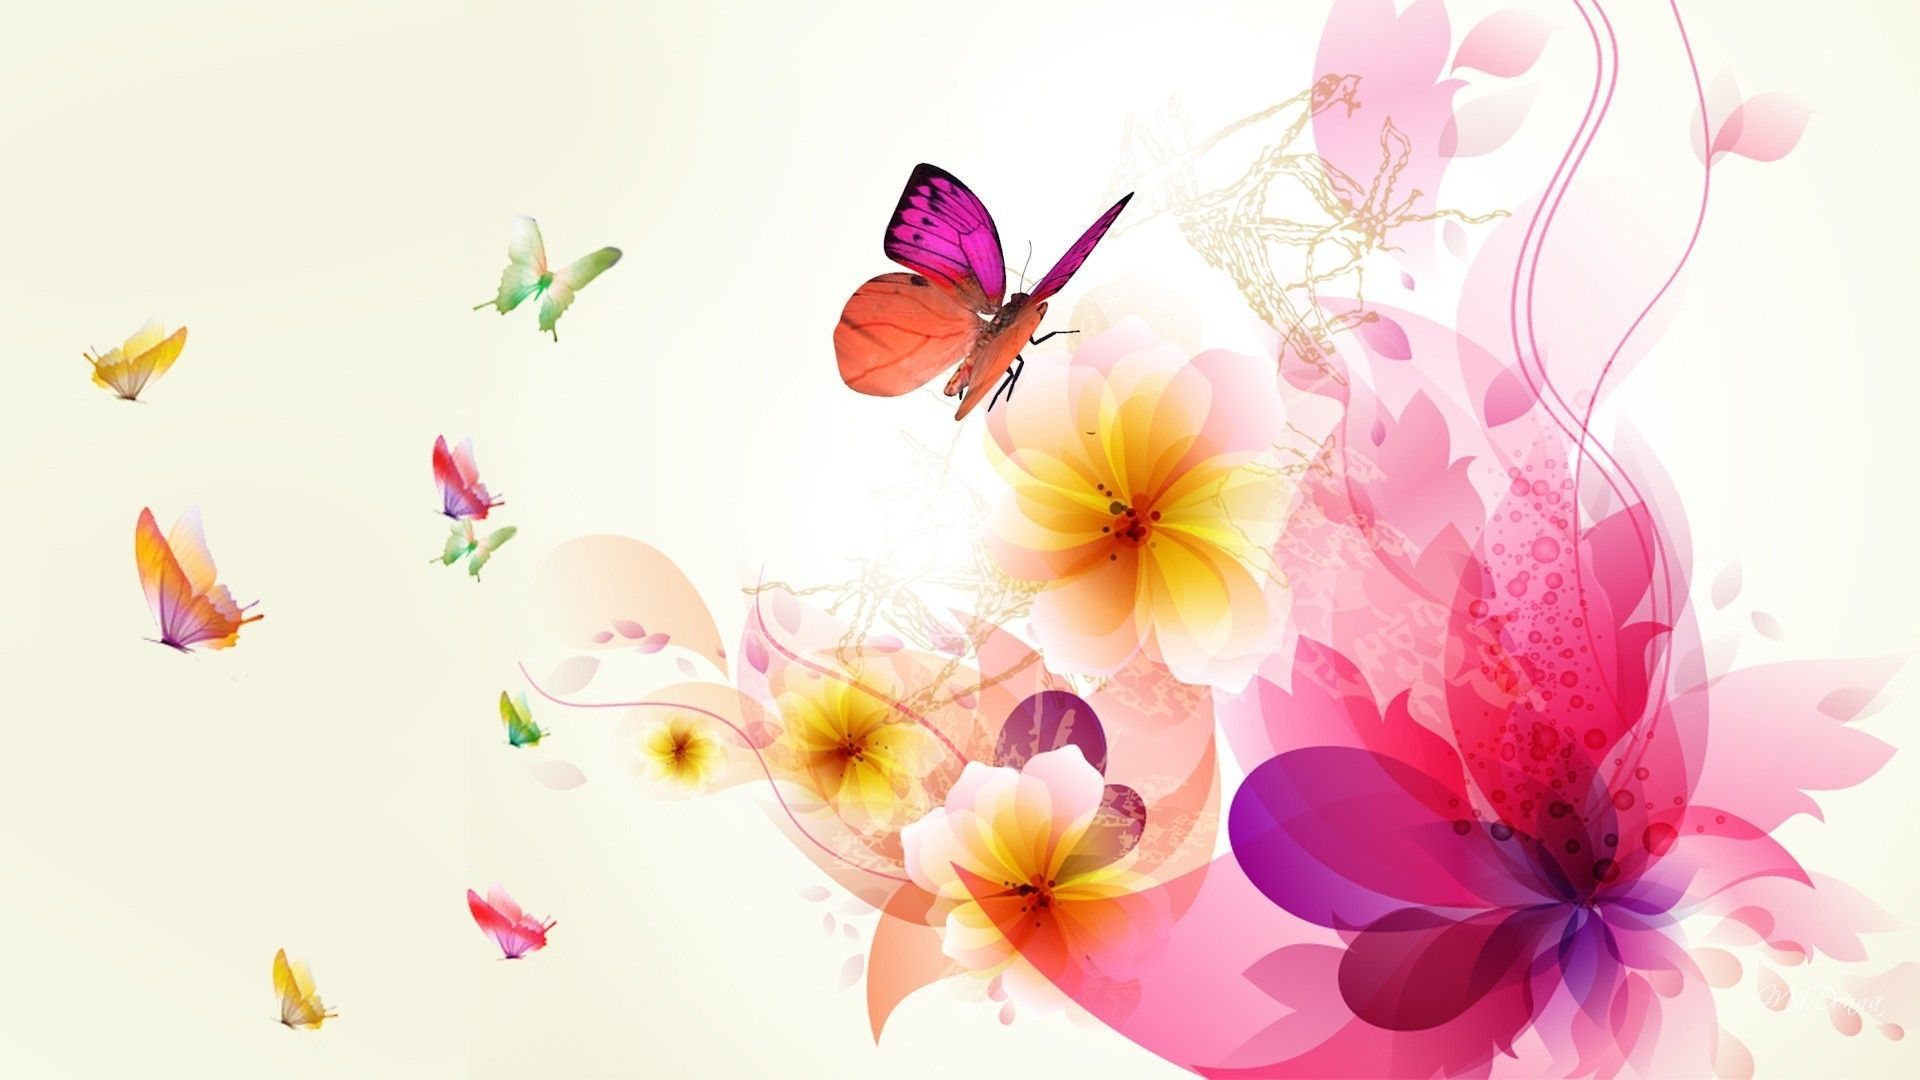 Abstract Floral Wallpapers Top Free Abstract Floral Backgrounds